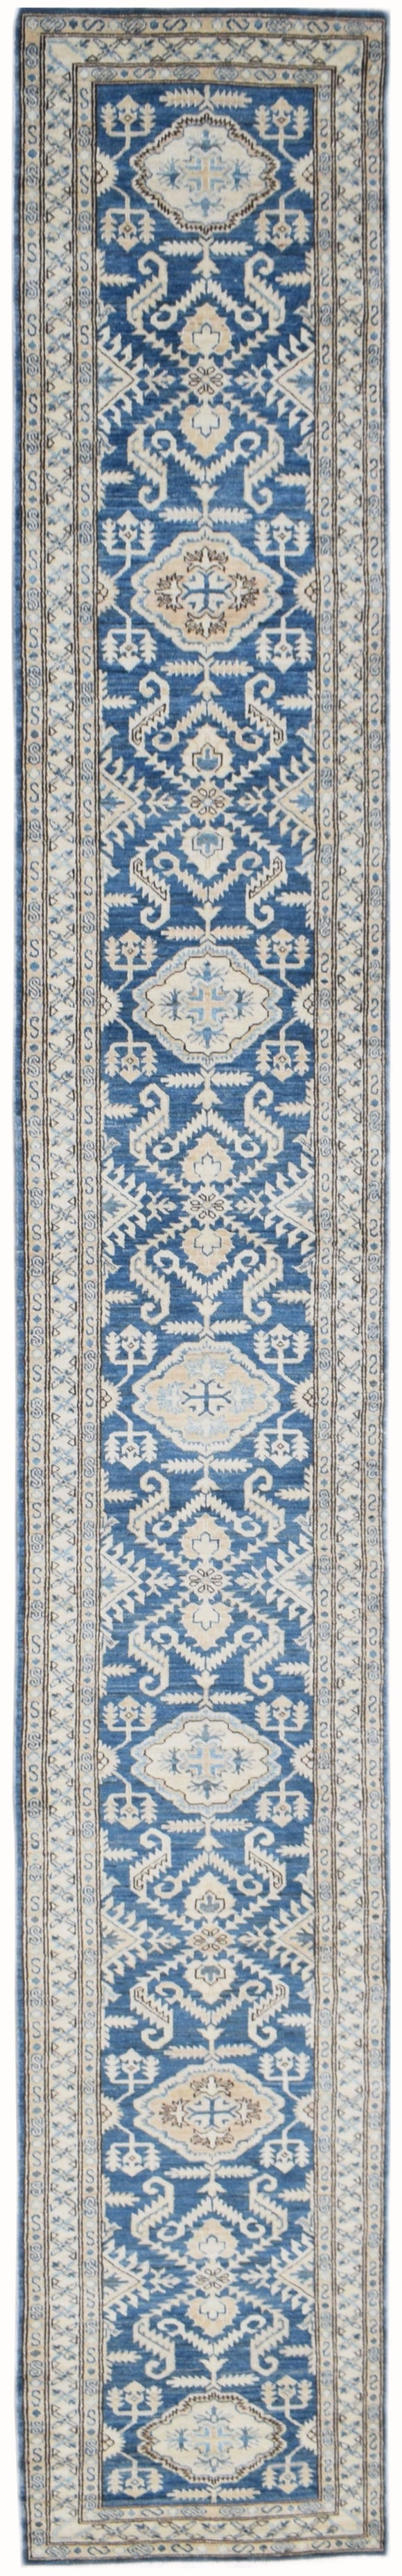 Handmade Sultan Collection Hallway Runner | 528 x 73 cm | 17'4